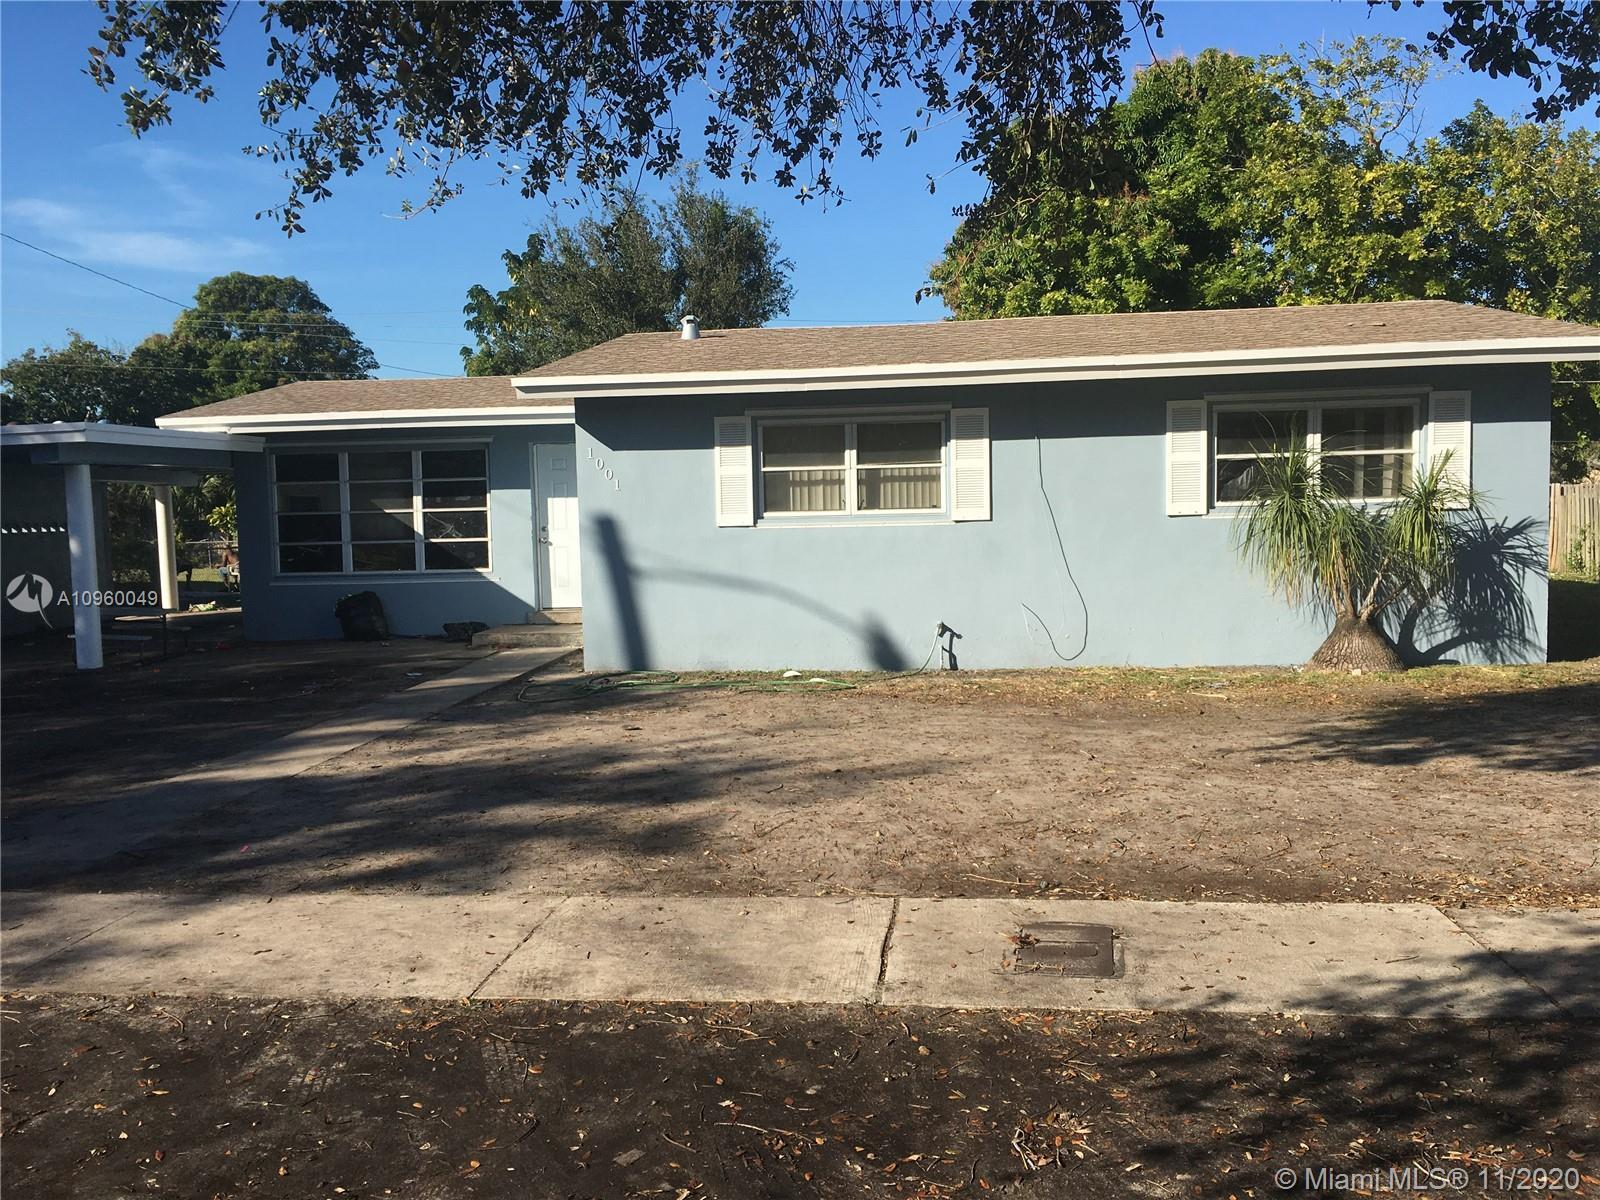 Completely updated 4 bedroom, 2 bathroom single-family home just under 2,000 square feet of living s